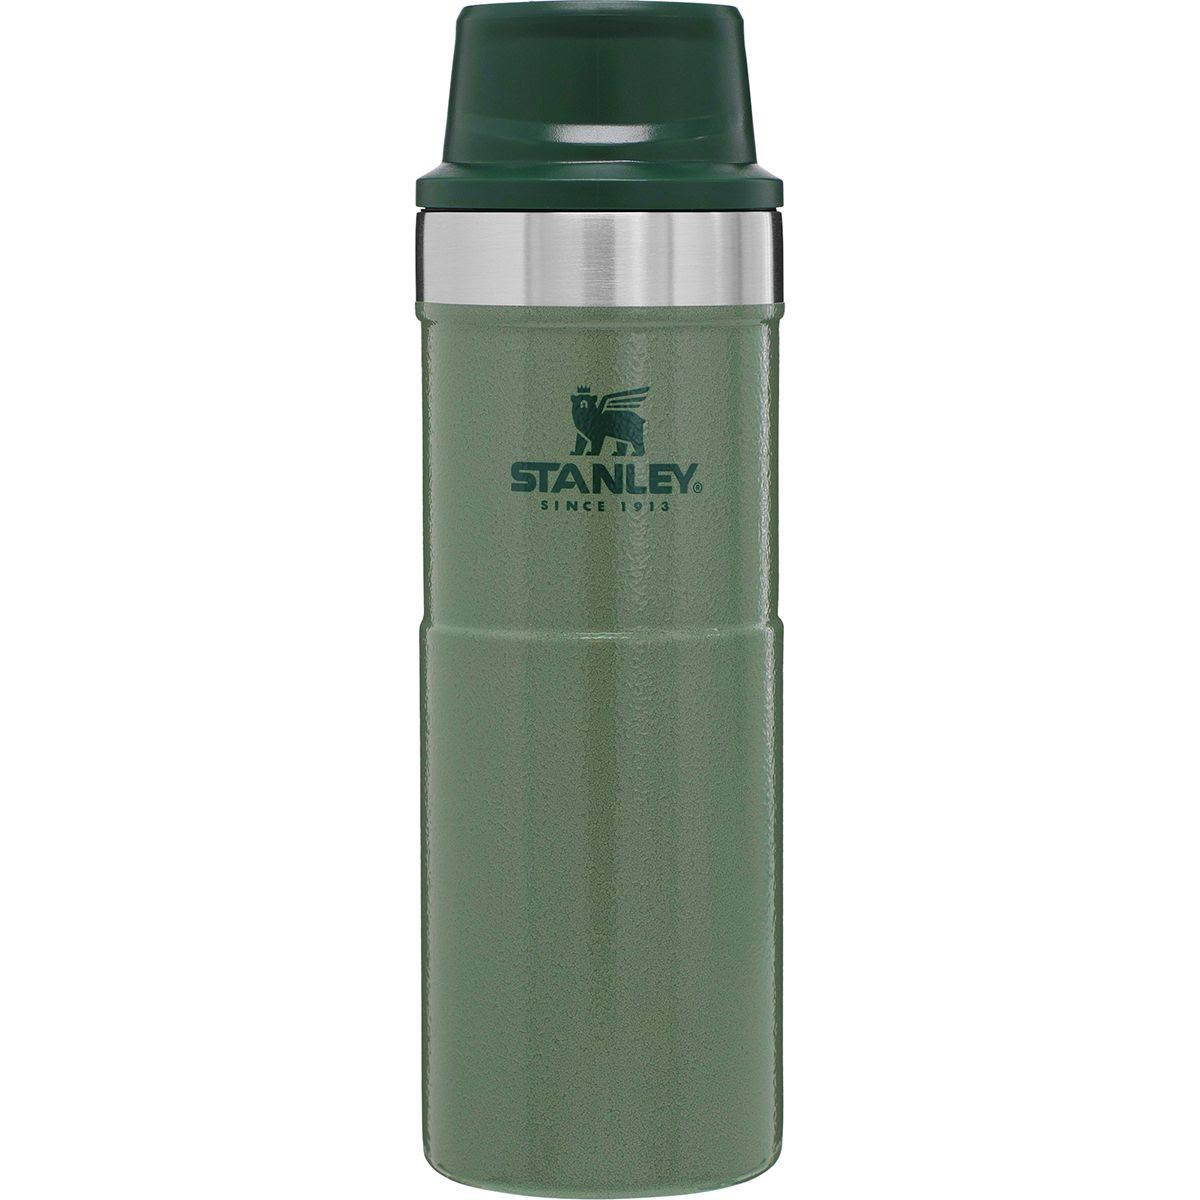 Stanley Classic Trigger-Action Travel Mug - 16 Ounce, Green